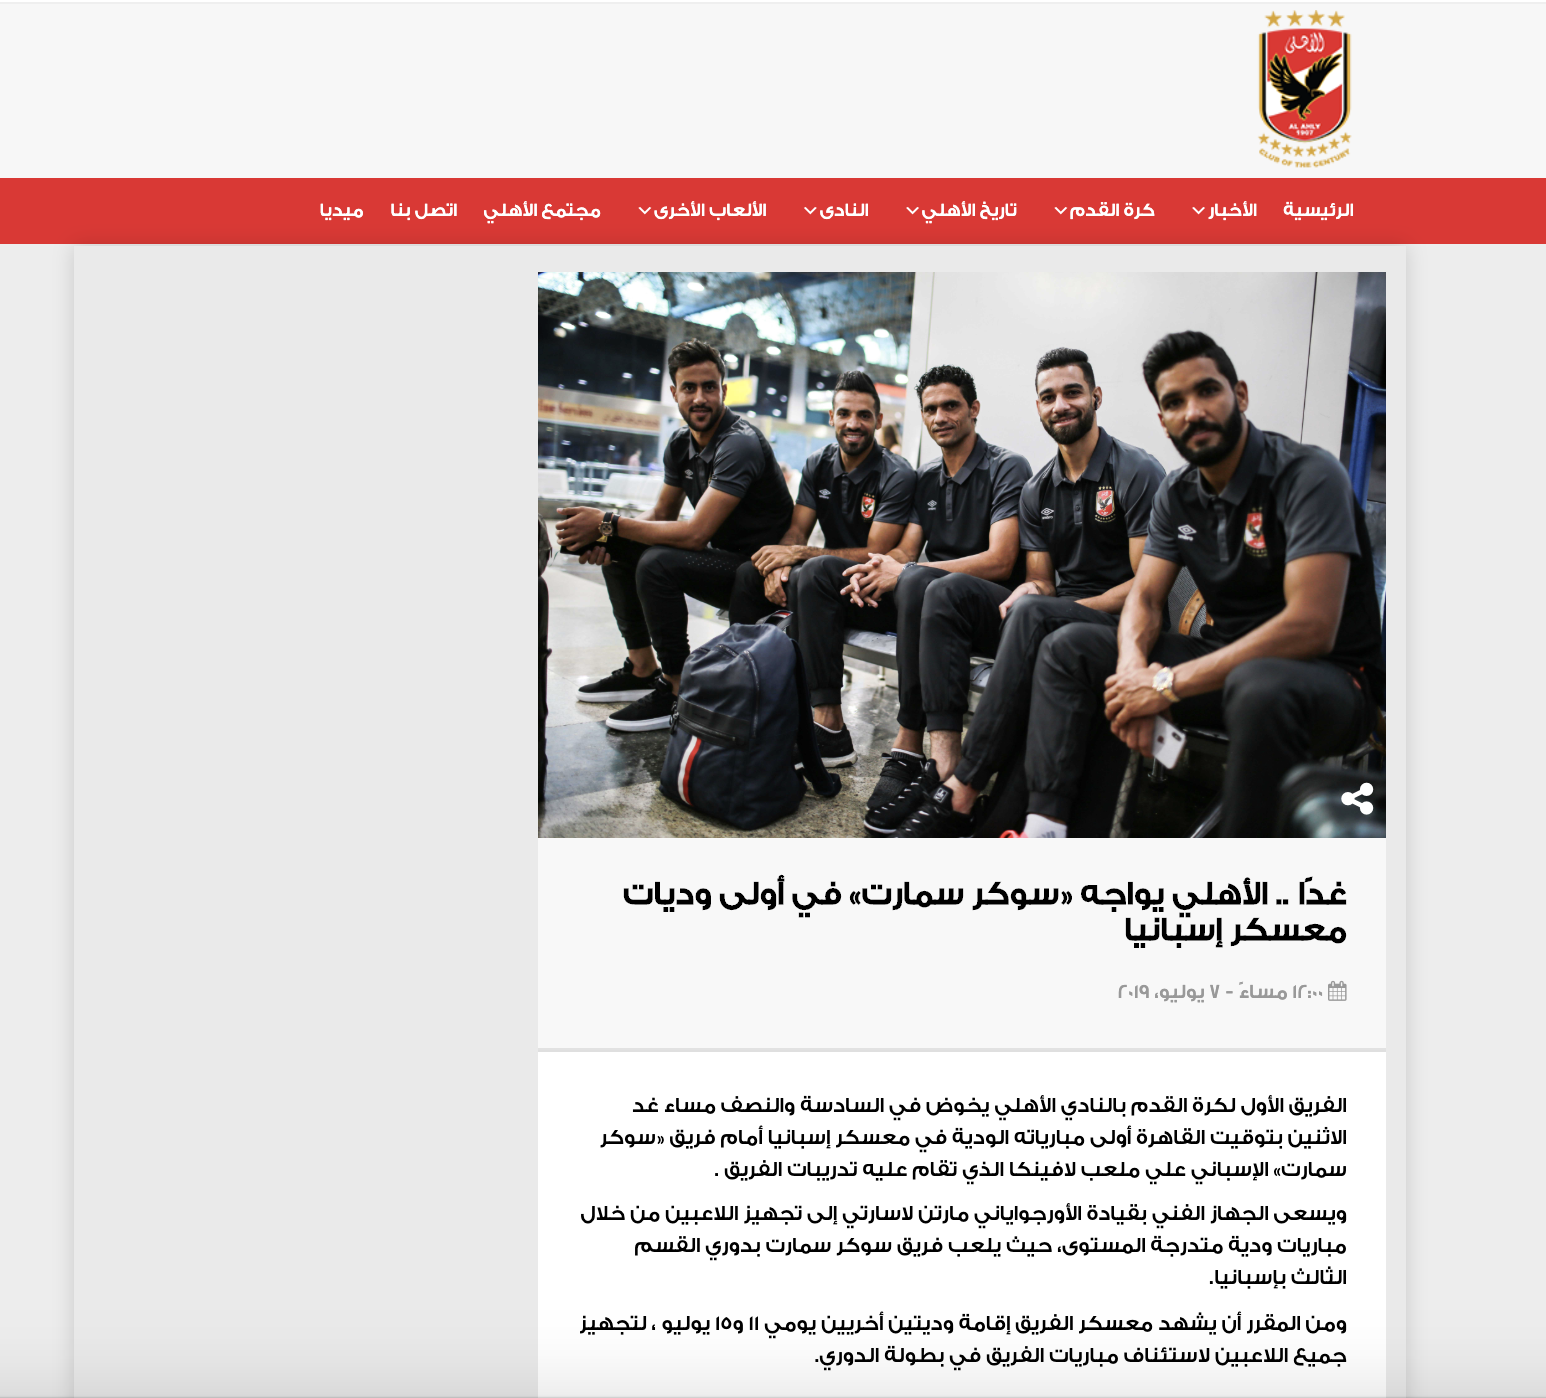 The match being announced on the Al Ahly official website.